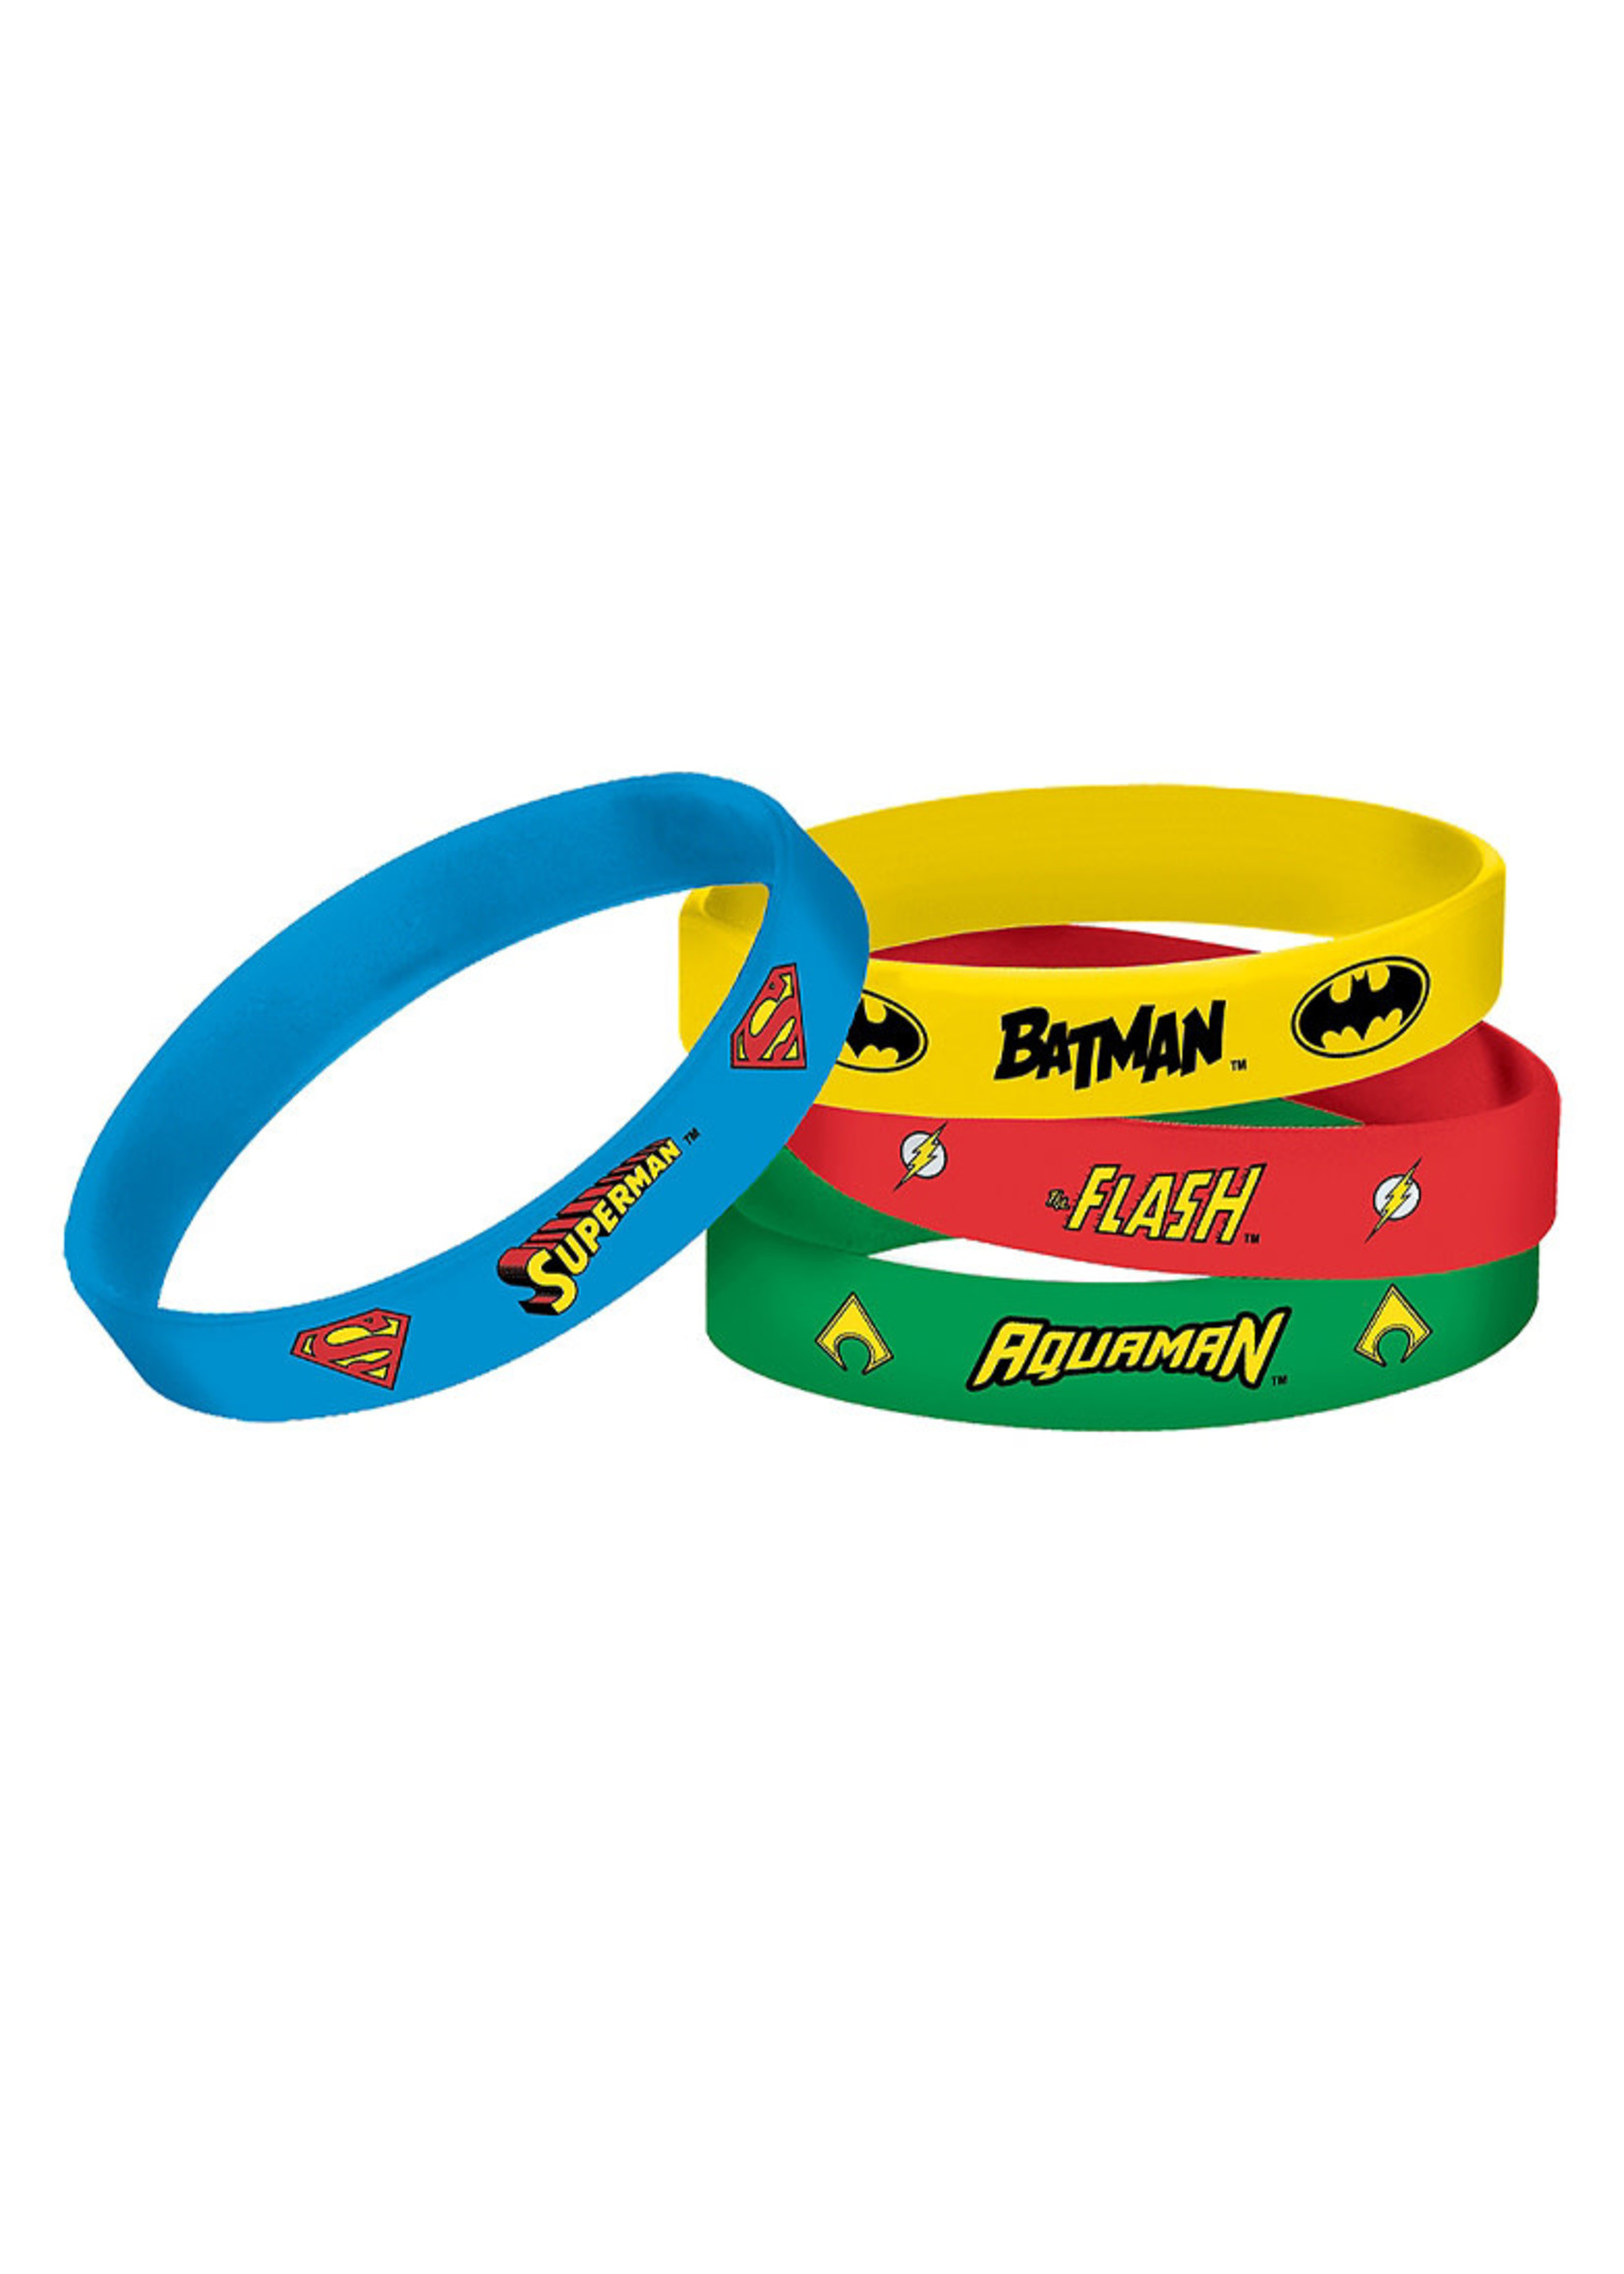 Justice League Heroes Unite Wristbands 4ct